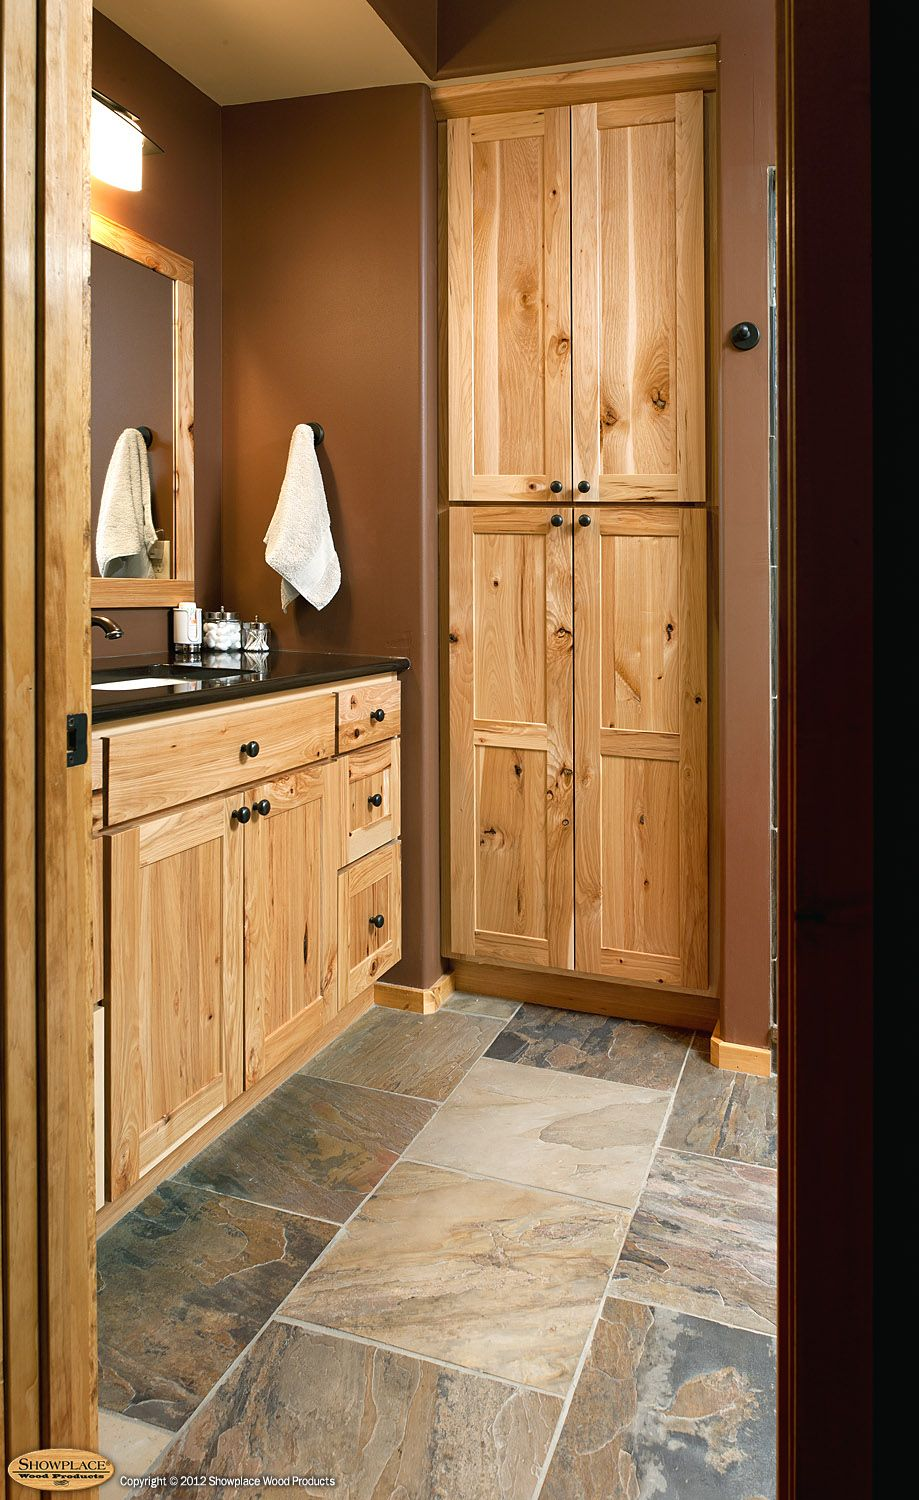 rustic hickory bathroom vanity | Cabinets: Rustic hickory ...